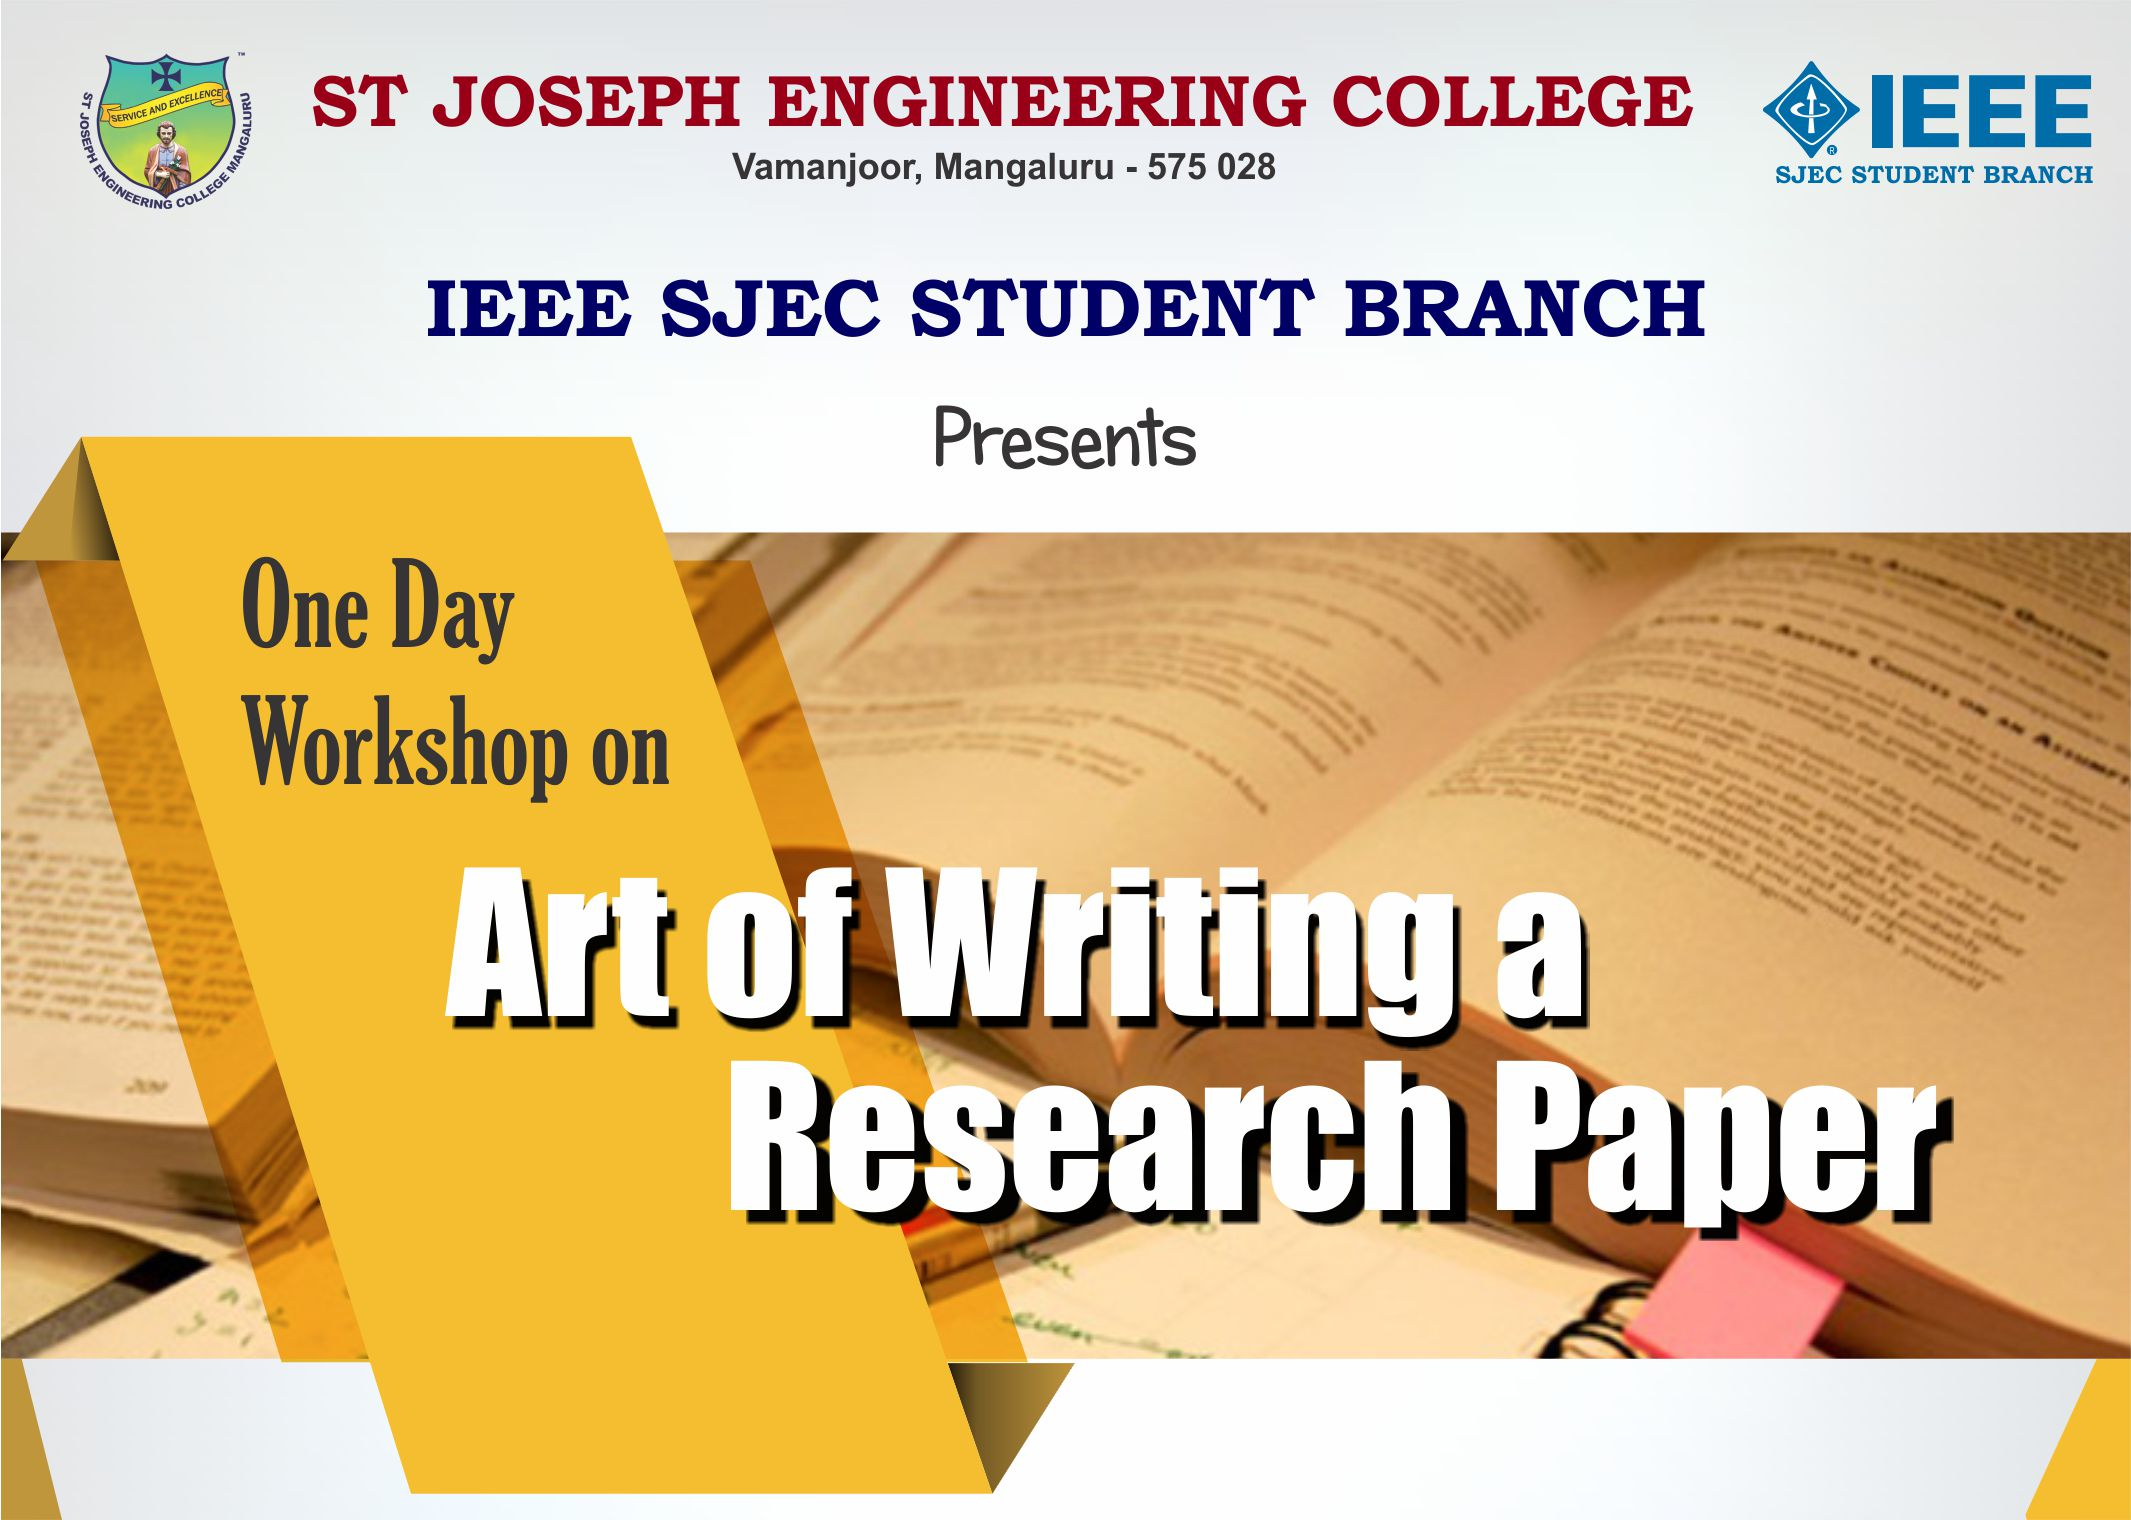 006 Workshop Banner Writing Of Research Fascinating Paper Book Pdf Synopsis Review Full